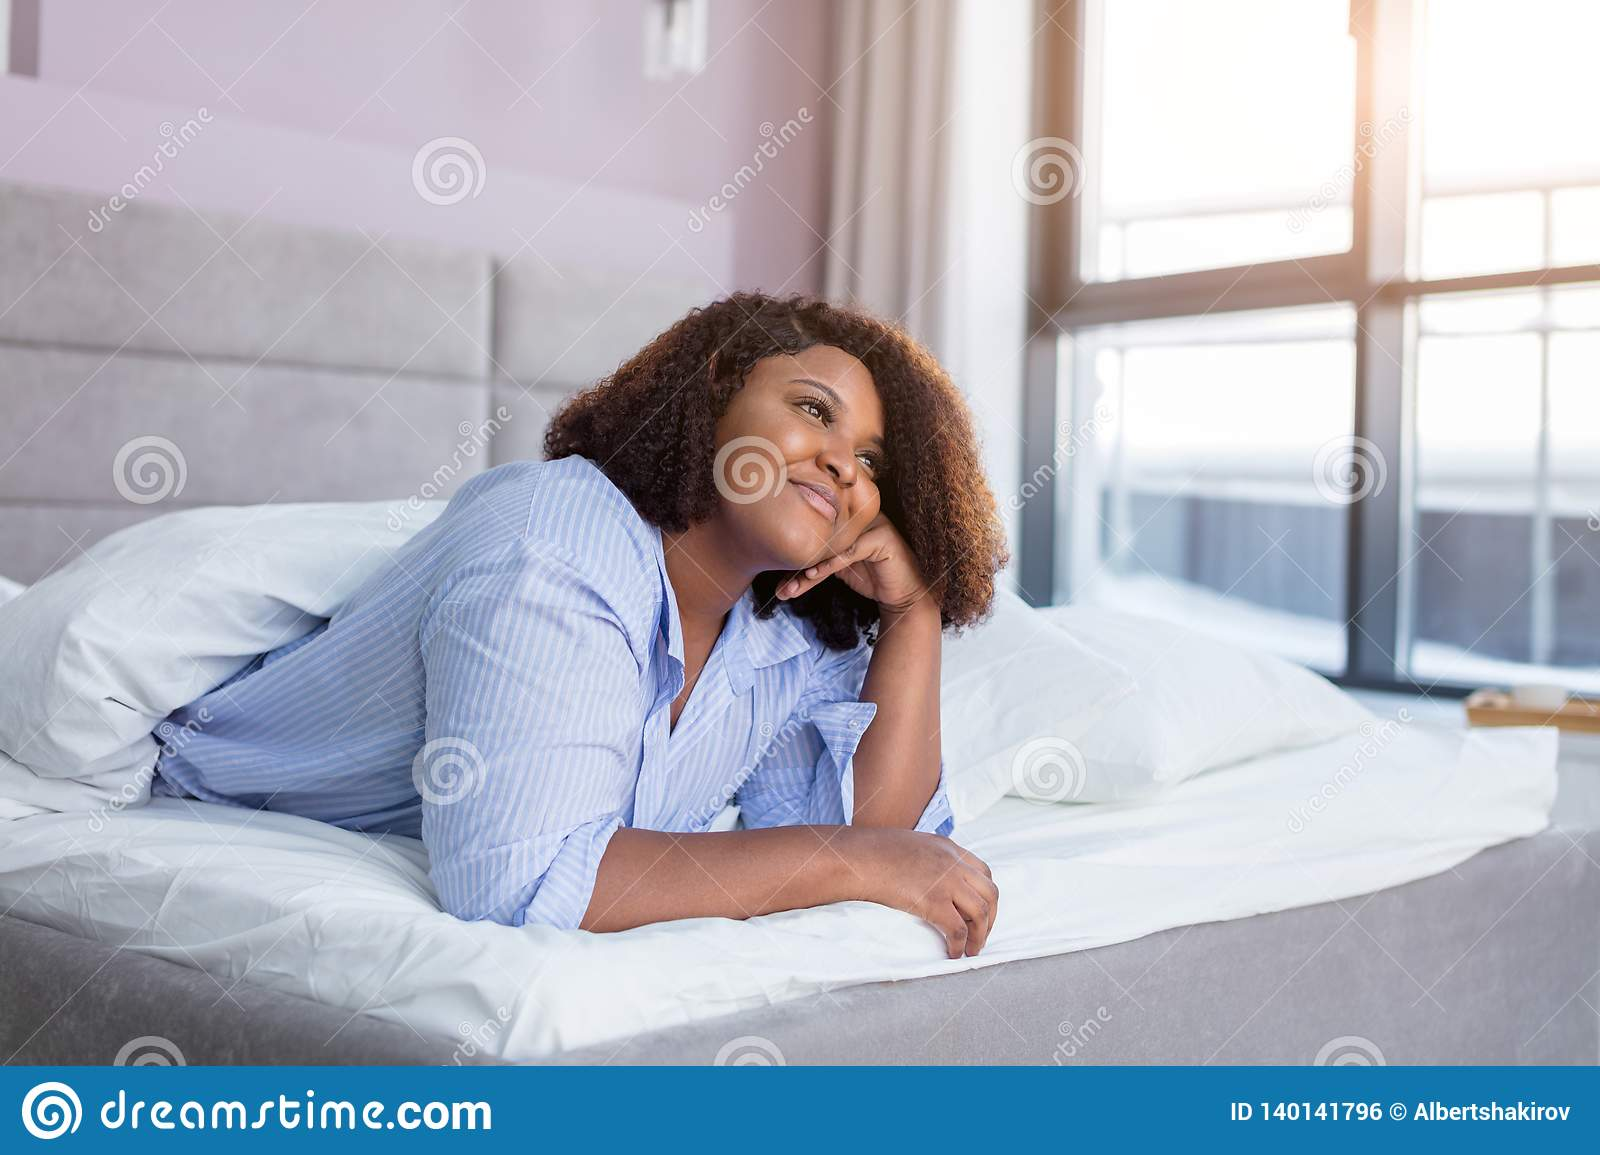 Cheerful girl thinking about her boyfriend while resting in the comfortable bed